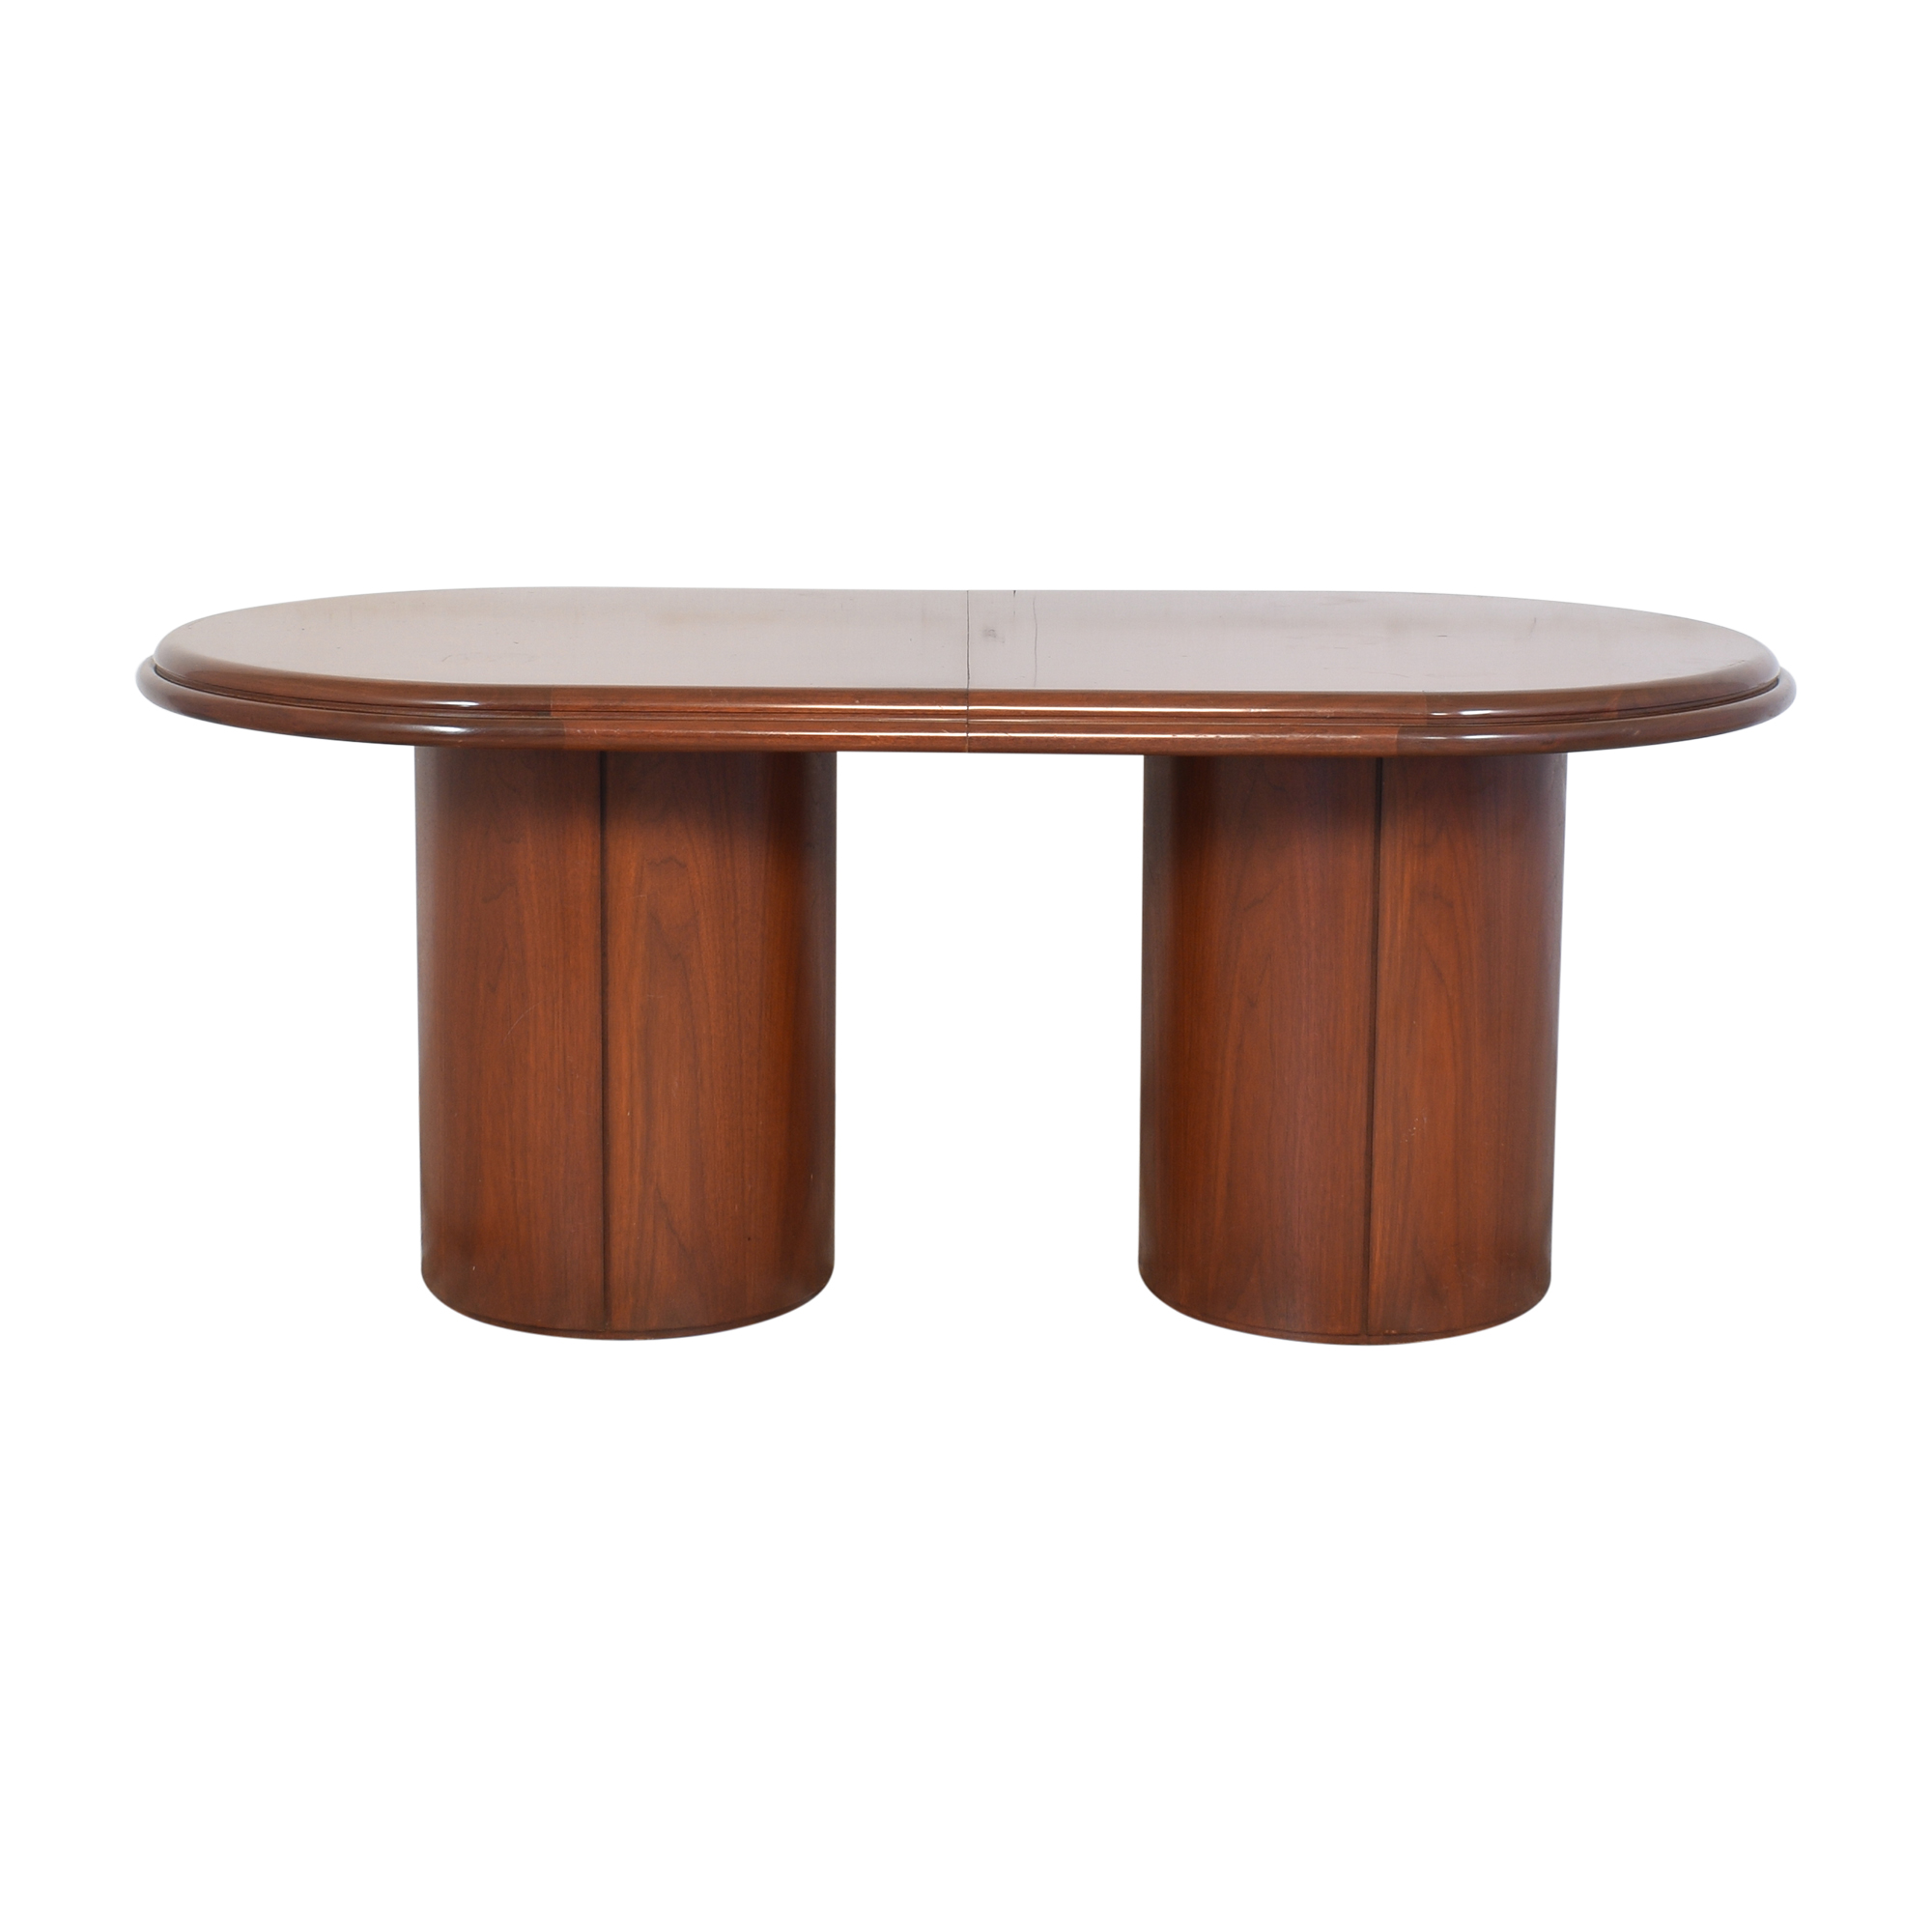 Double Column Base Extendable Dining Table used